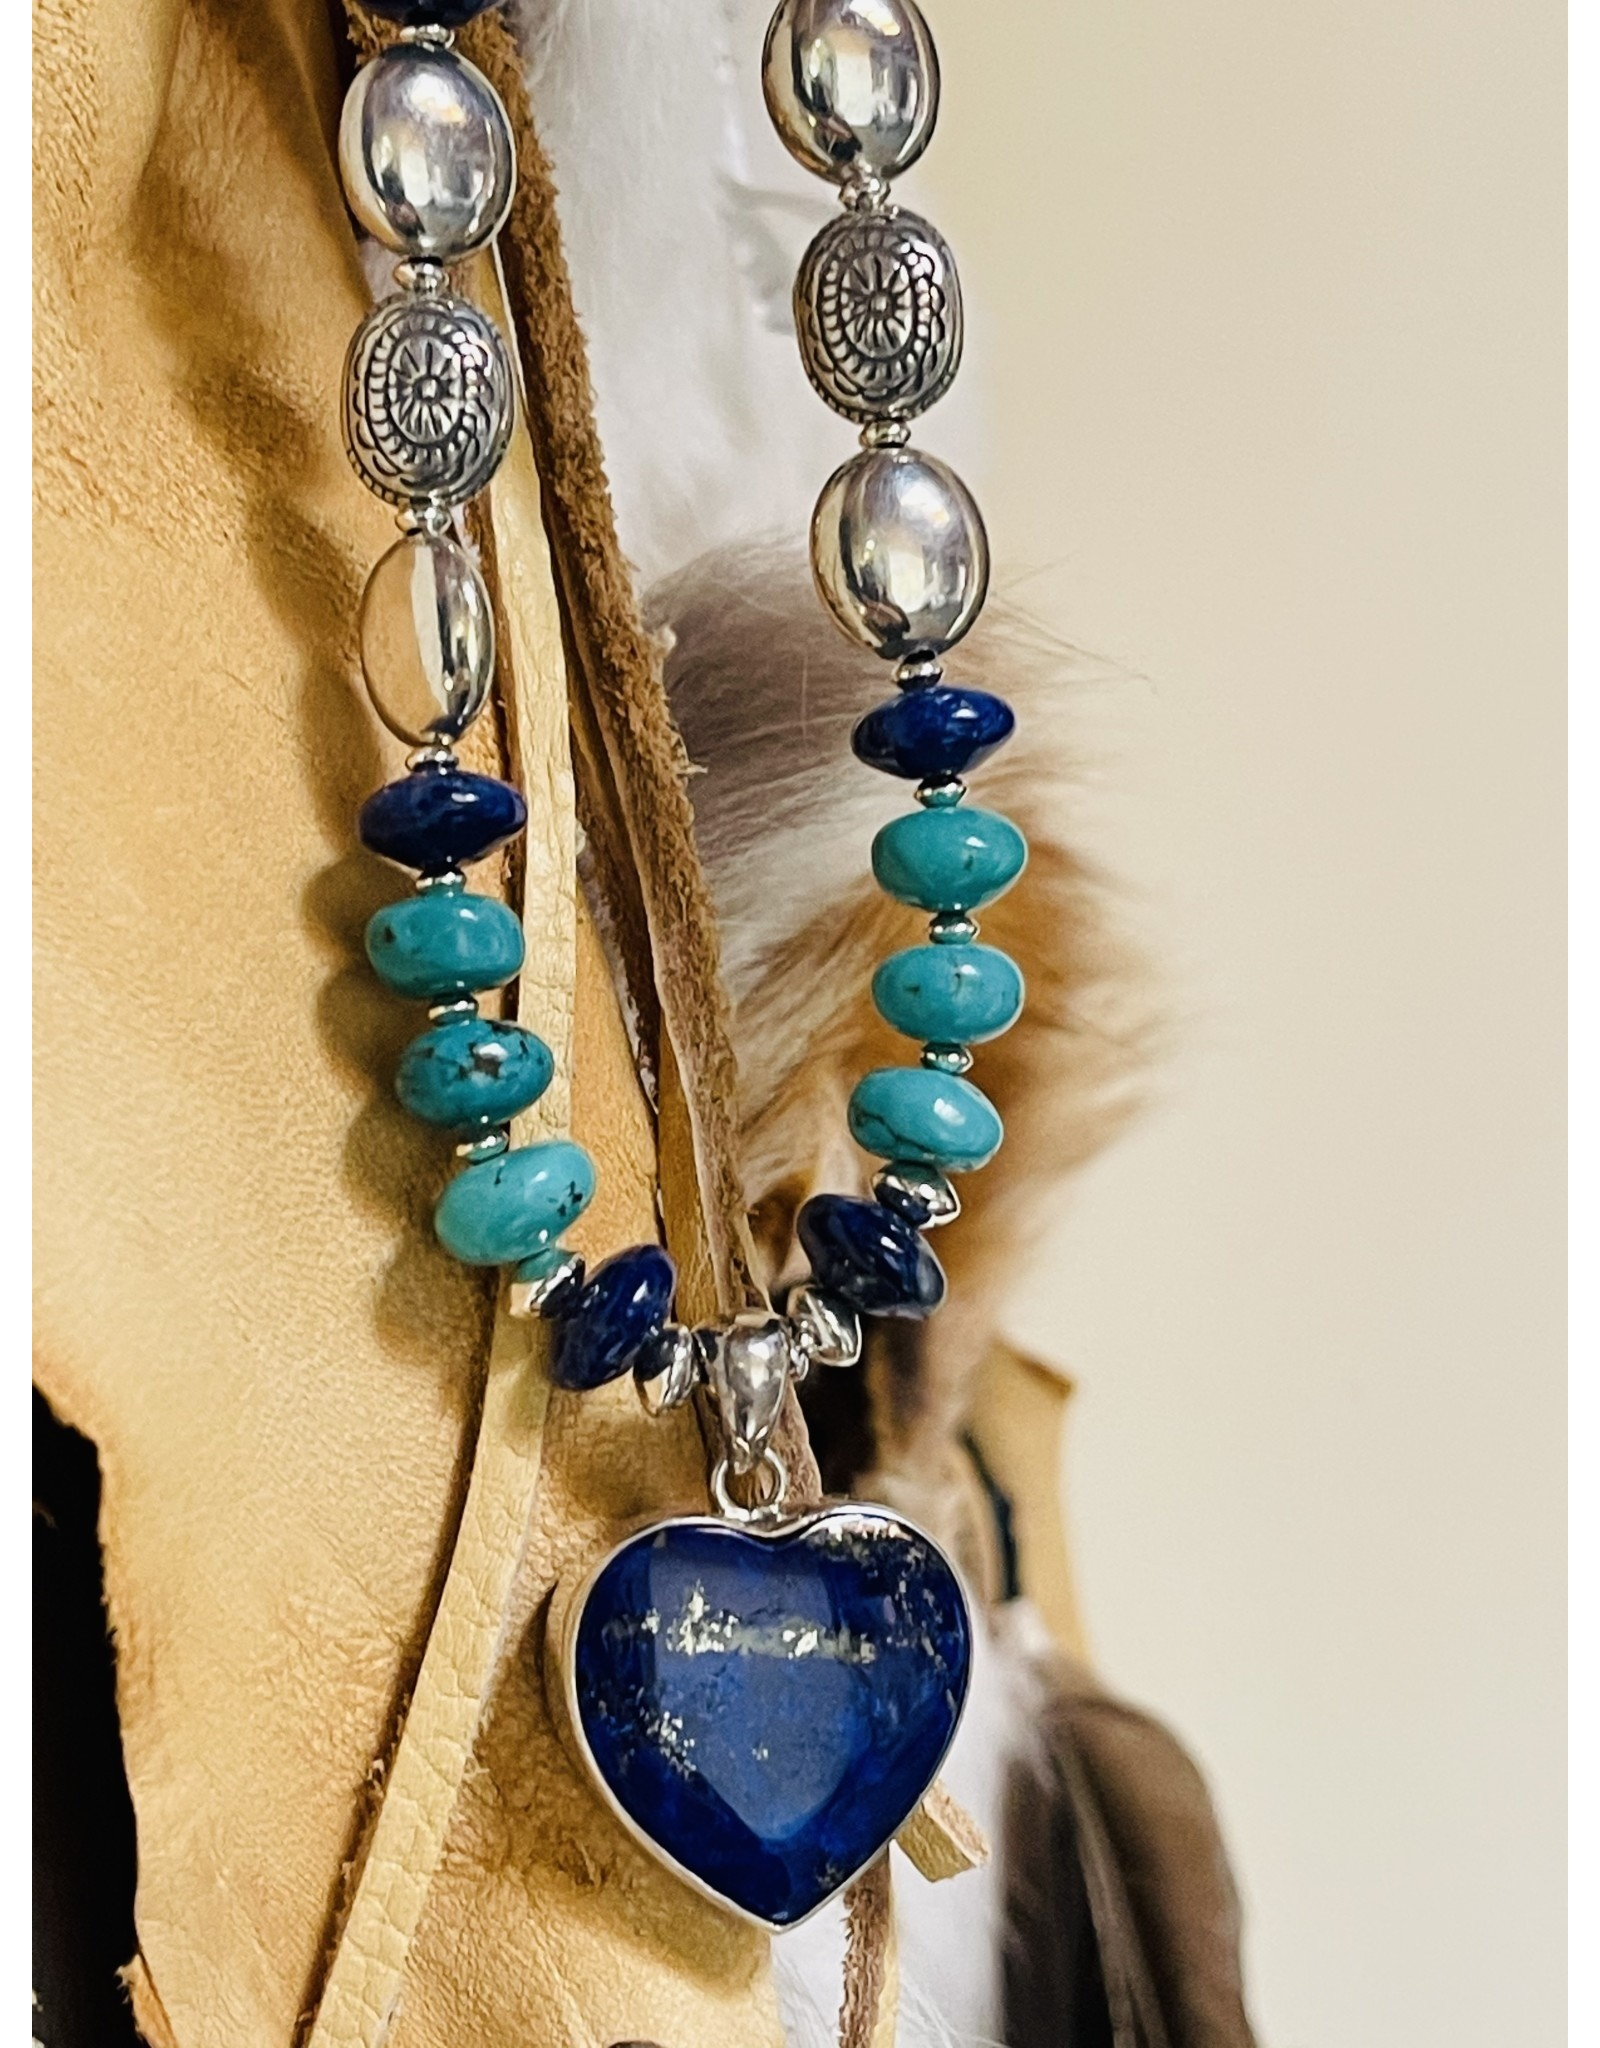 Annette Colby - Jeweler Lapis Heart Pendant with Turquoise & Lapis Necklace by Annette Colby